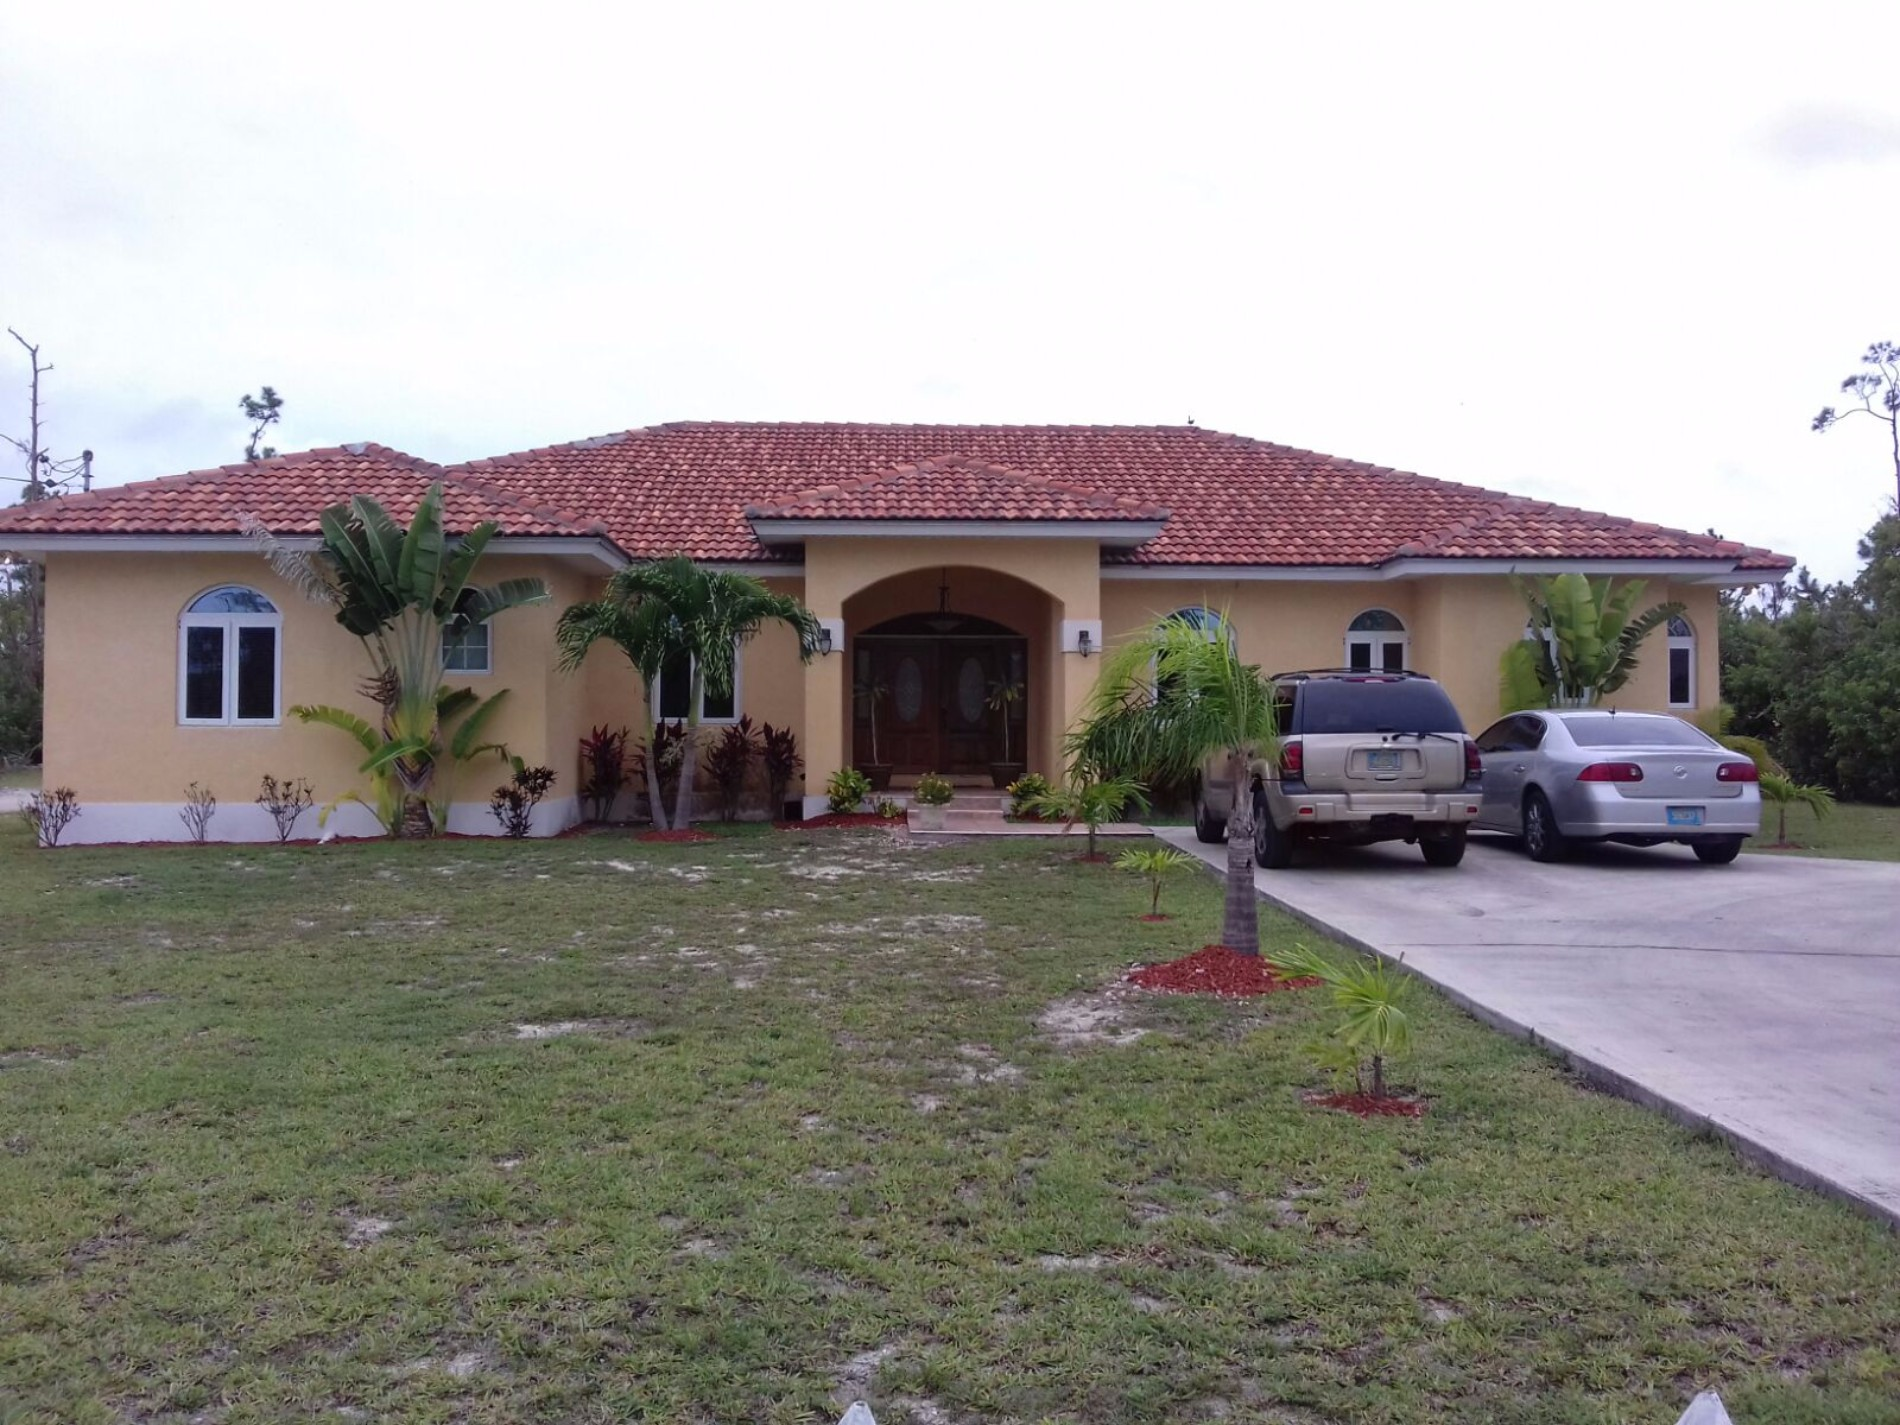 Single Family Home for Sale at Fairly New Home in Lucayan Knoll 3 bedrooms 2 bathrooms - MLS 30400 Lucayan Knoll, Grand Bahama, Bahamas